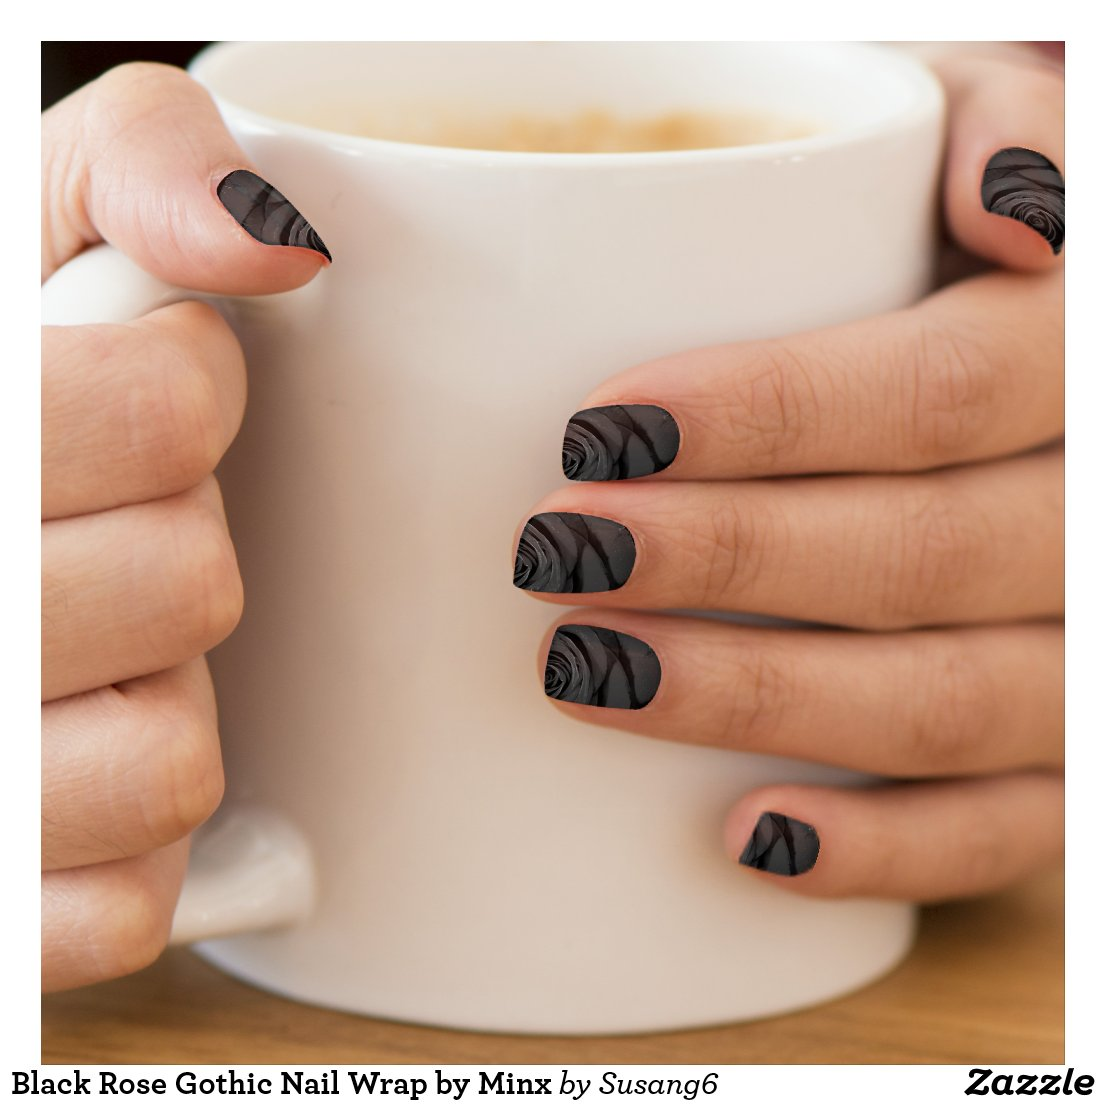 Black Rose Gothic Nail Wrap by Minx